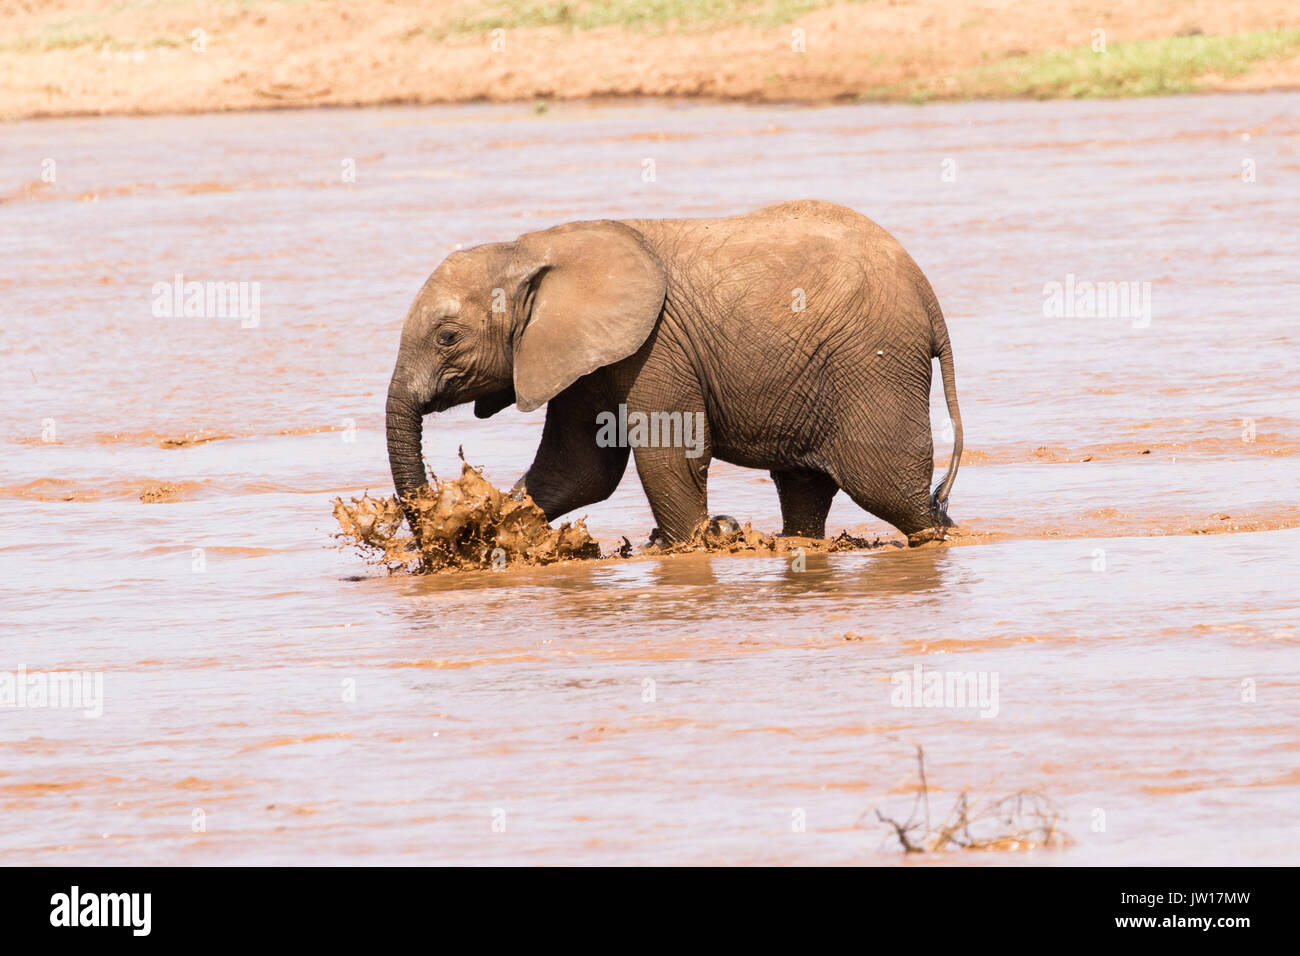 Baby elephant (African Elephant, Loxodonta africana) following its mother to cross the river, making splashes Stock Photo